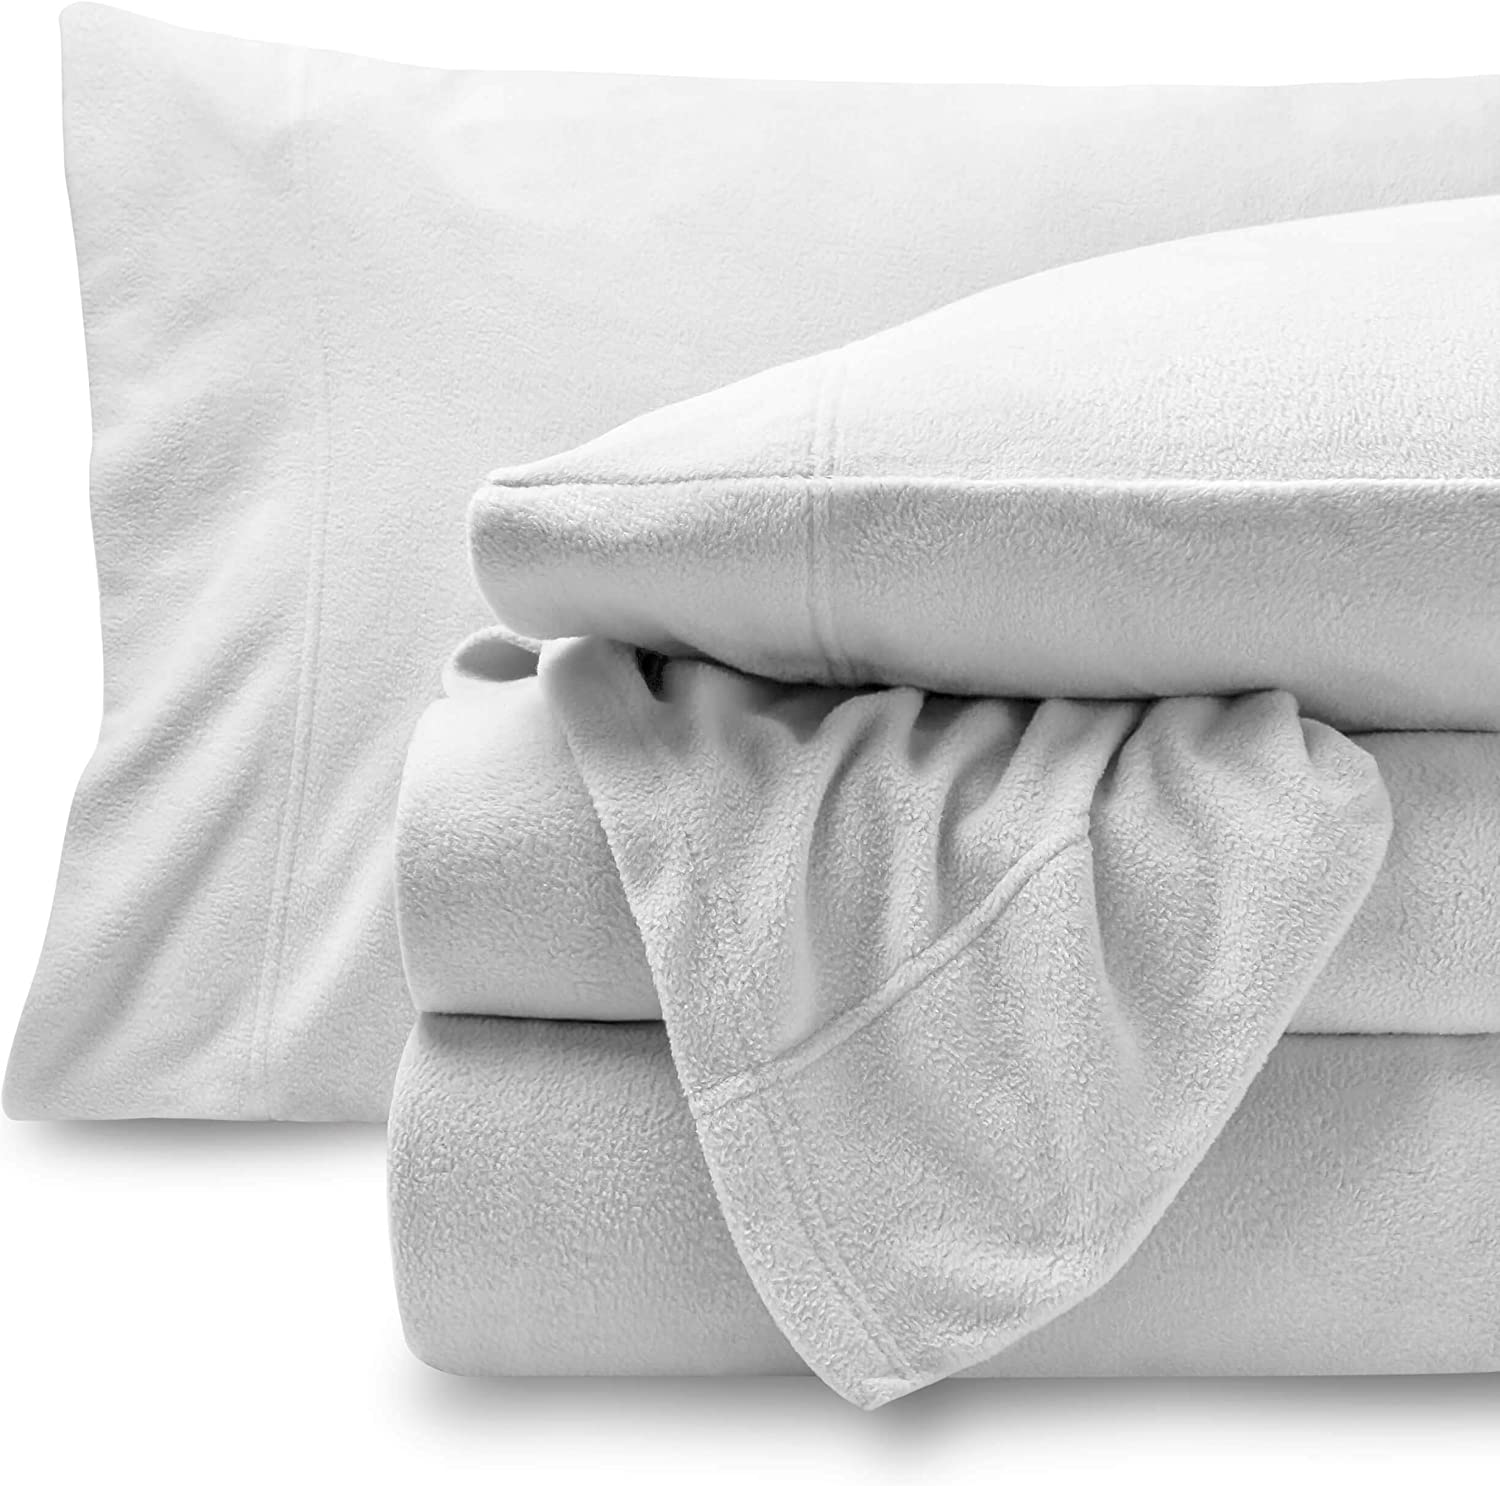 Bare Home Super Soft Fleece Sheet Set - Twin Extra Long Size - Extra Plush Polar Fleece, Pill-Resistant Bed Sheets - All Season Cozy Warmth, Breathable & Hypoallergenic (Twin XL, White)